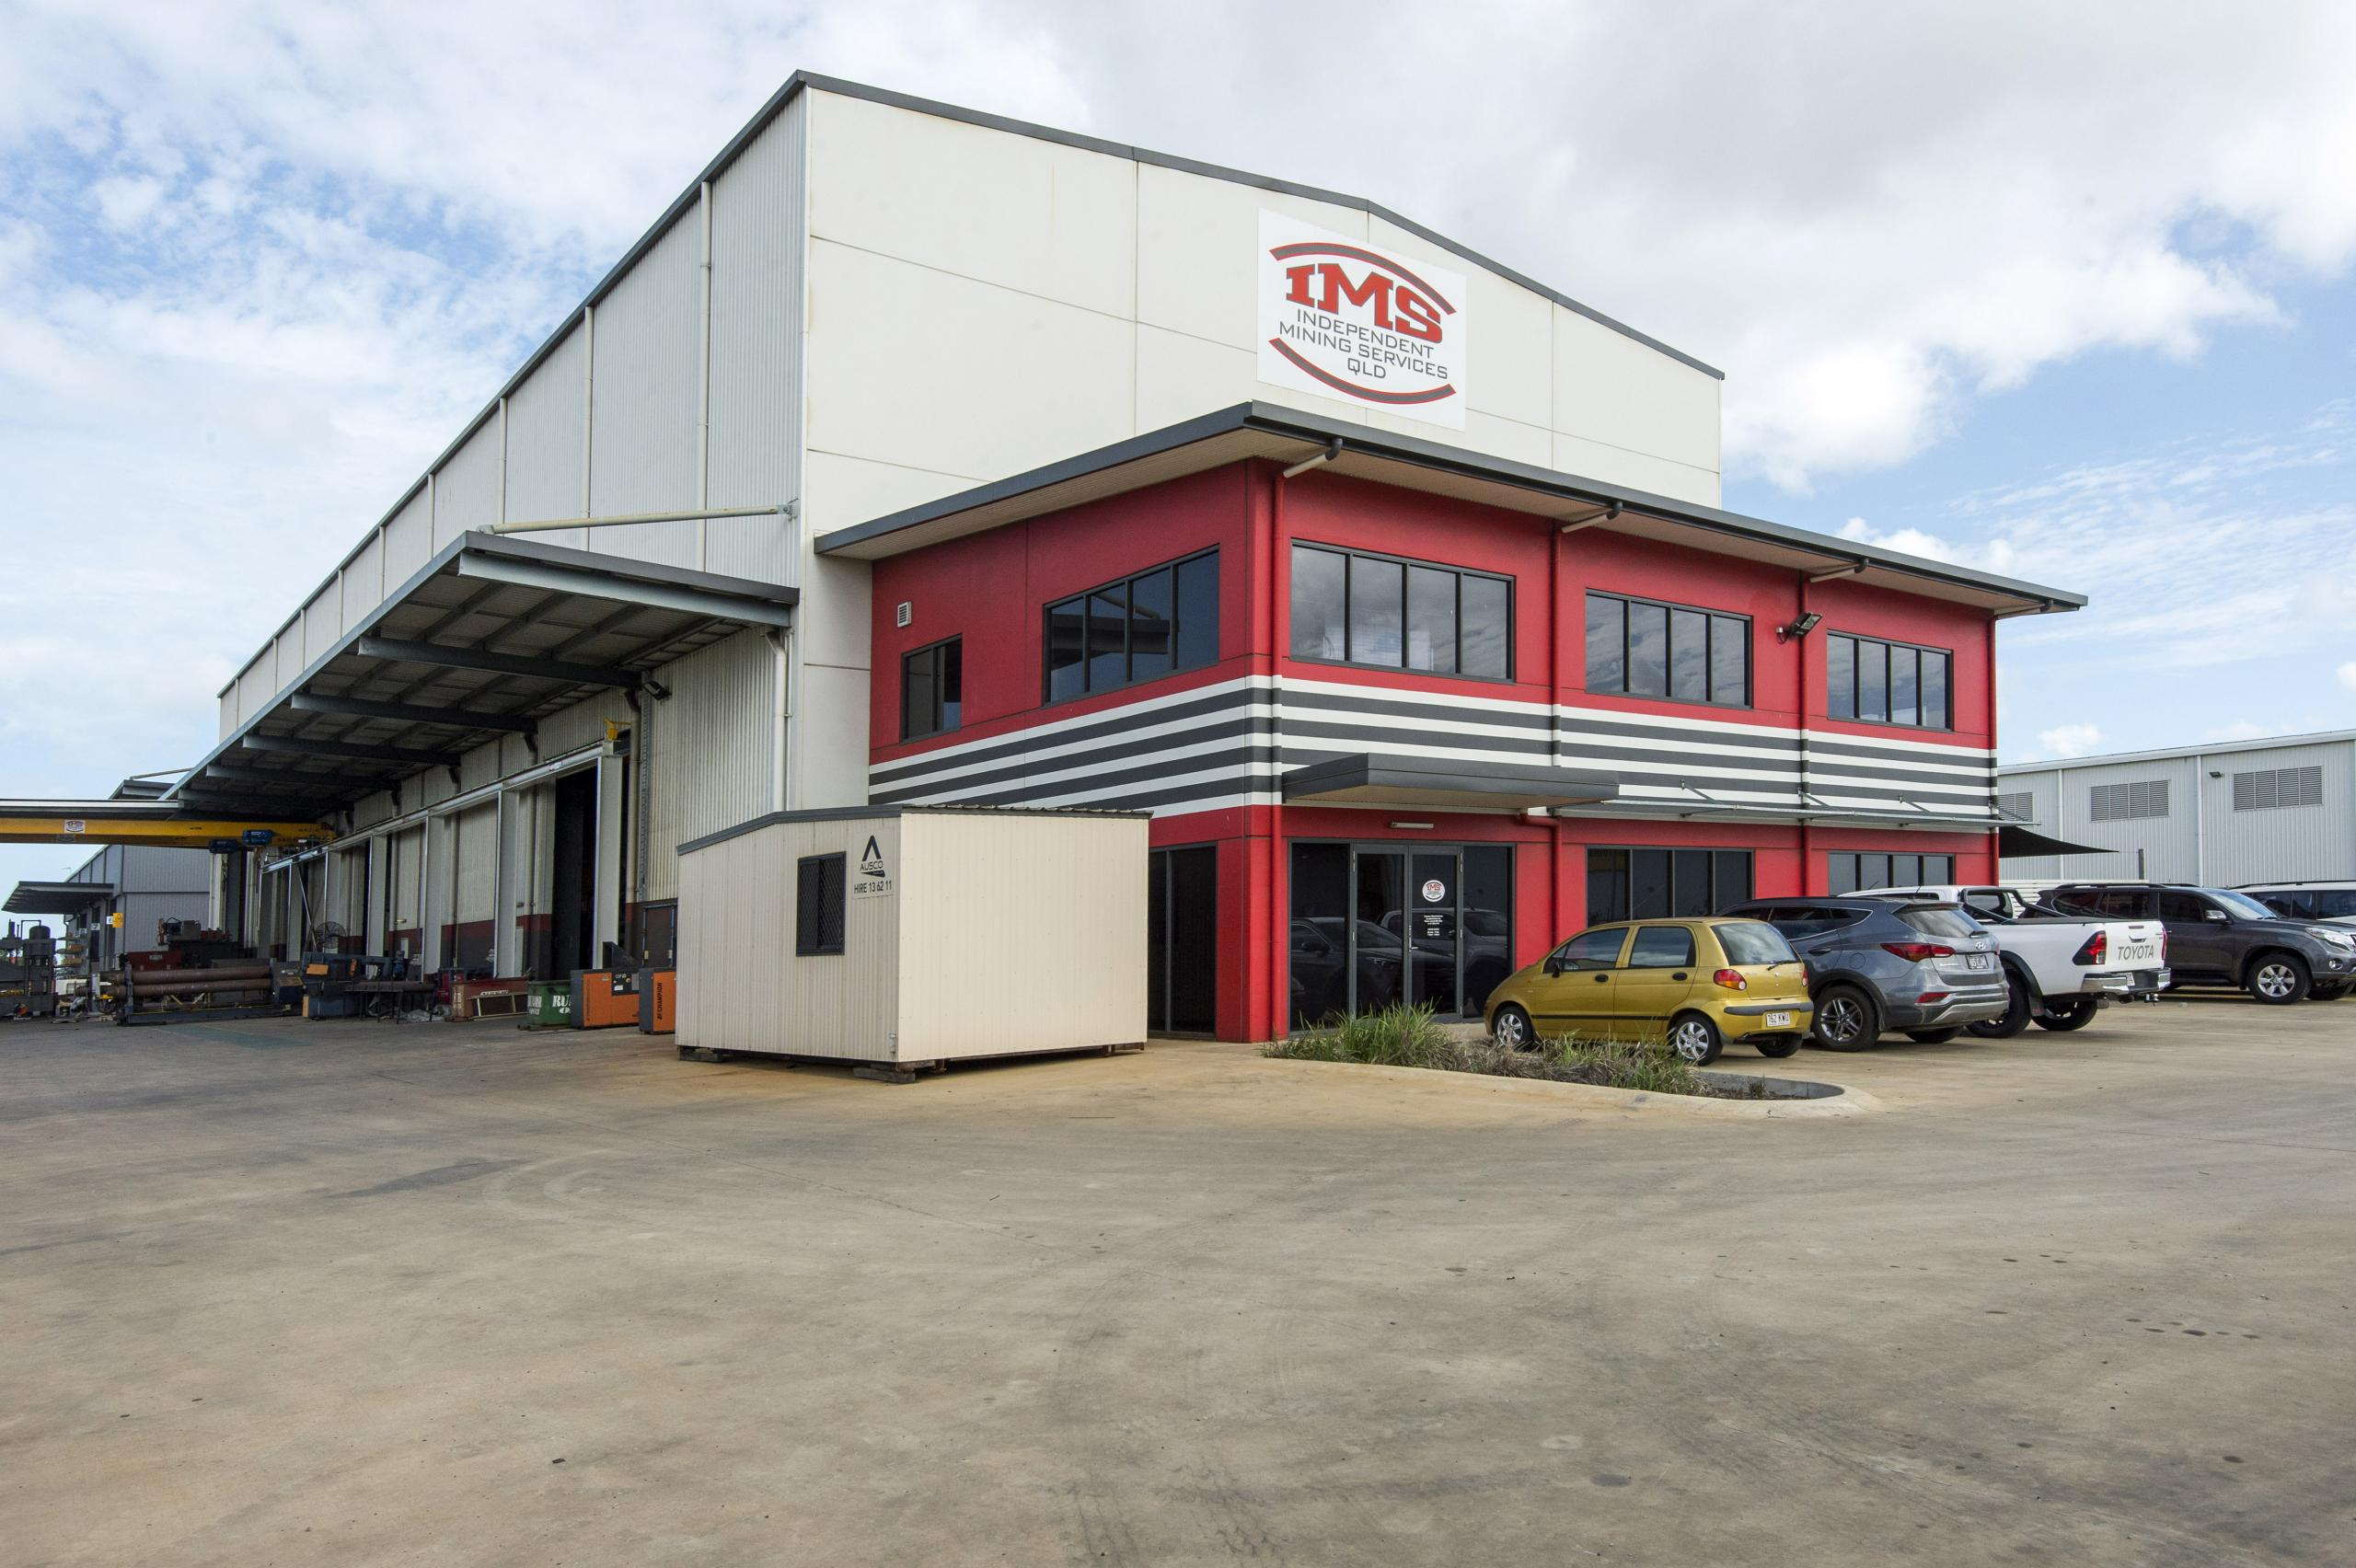 Diesel Dr, Mackay, QLD   Trilogy Funds